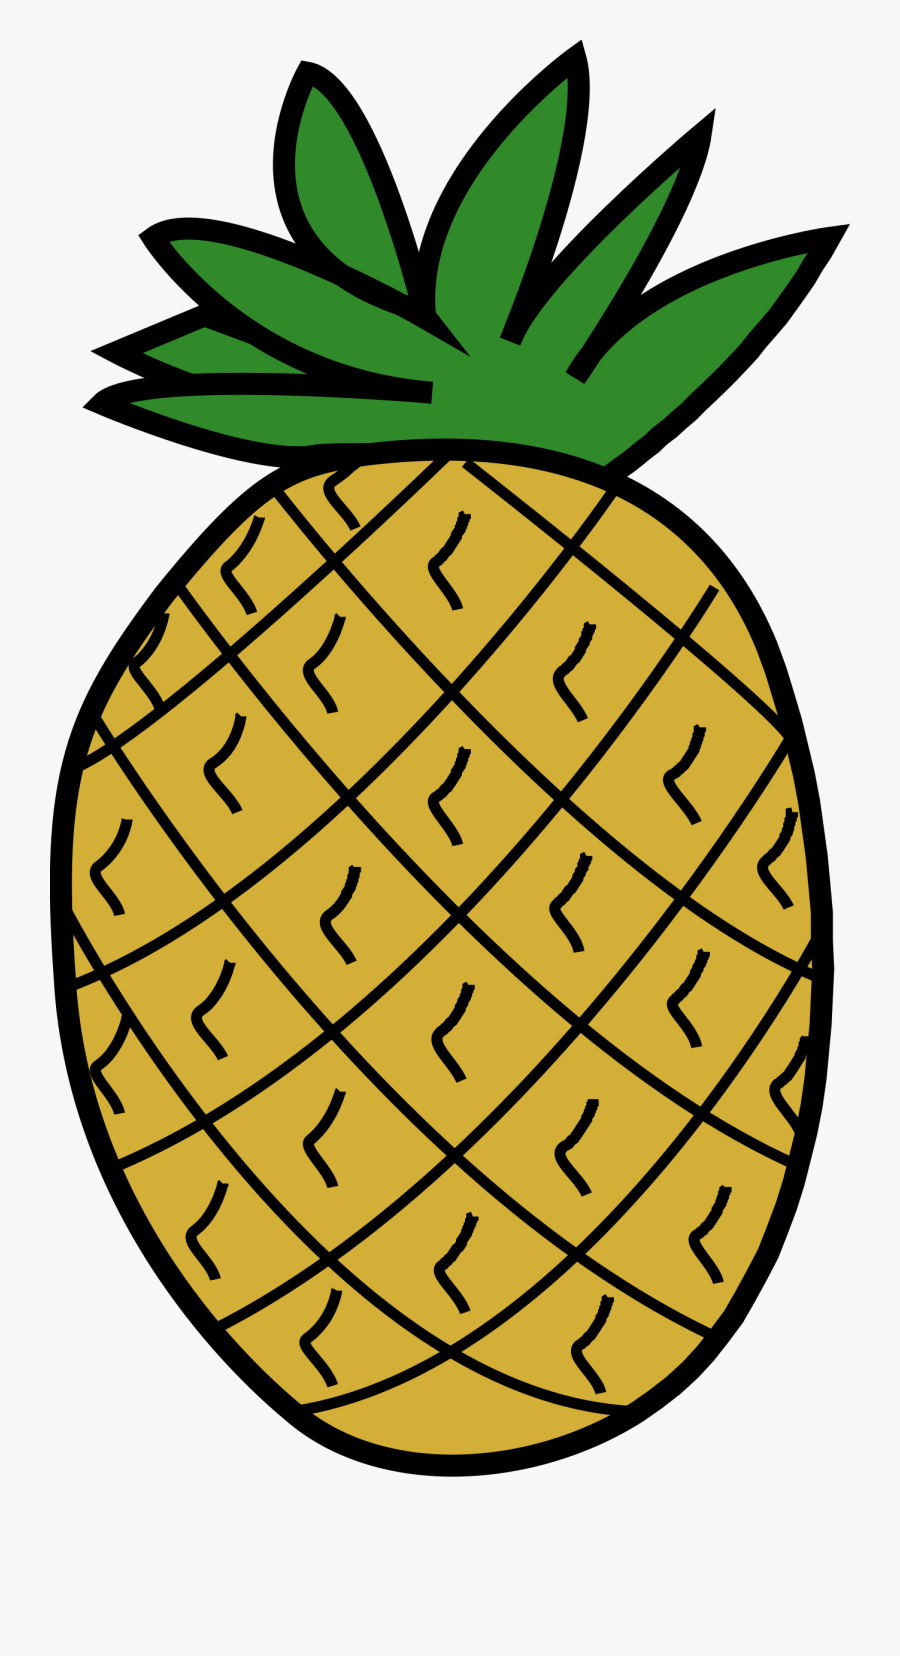 Clip Art Pineapple - Clipart Image Of Pineapple, Transparent Clipart